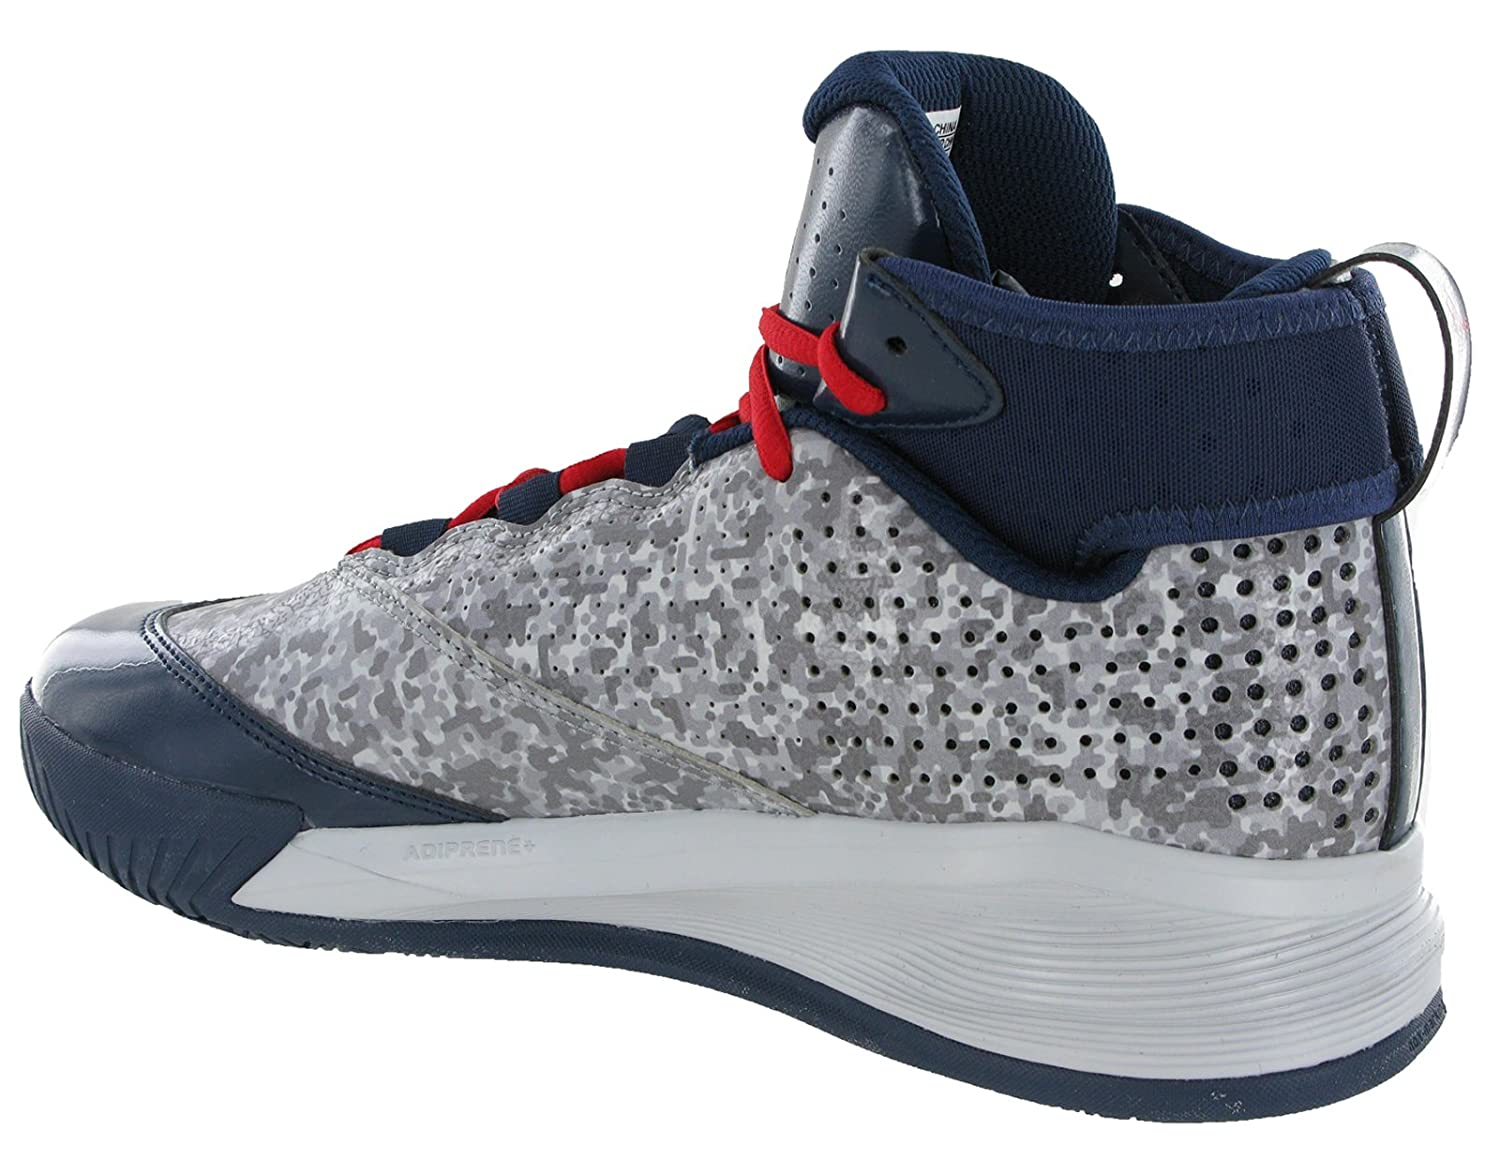 Adidas Rim Reaper Basketball Mens Boots AQ8495: Amazon.co.uk: Shoes & Bags